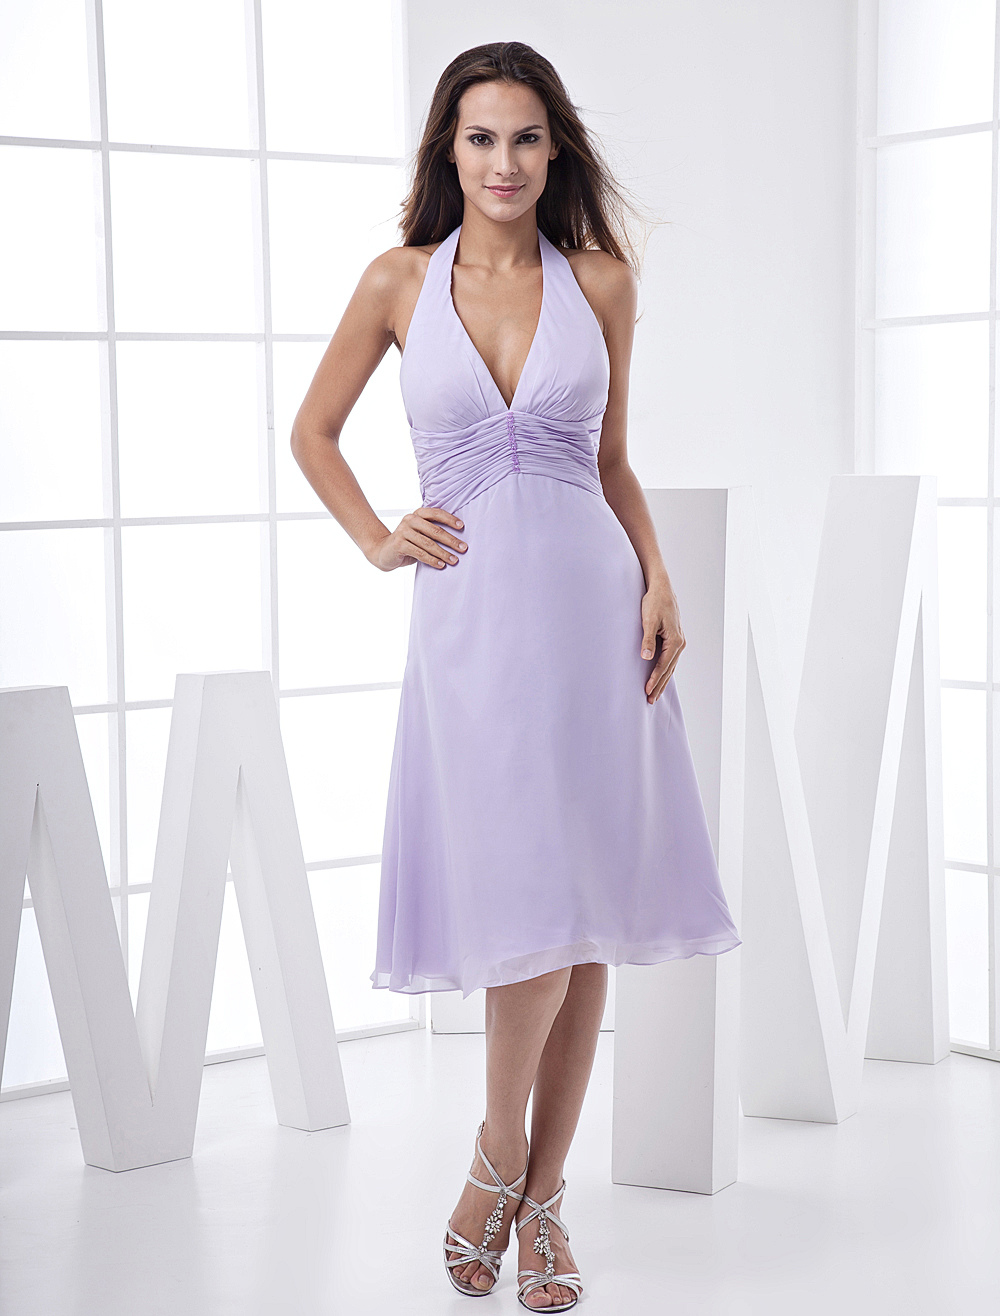 V-Neck Backless Satin Chiffon Summer Prom Dress